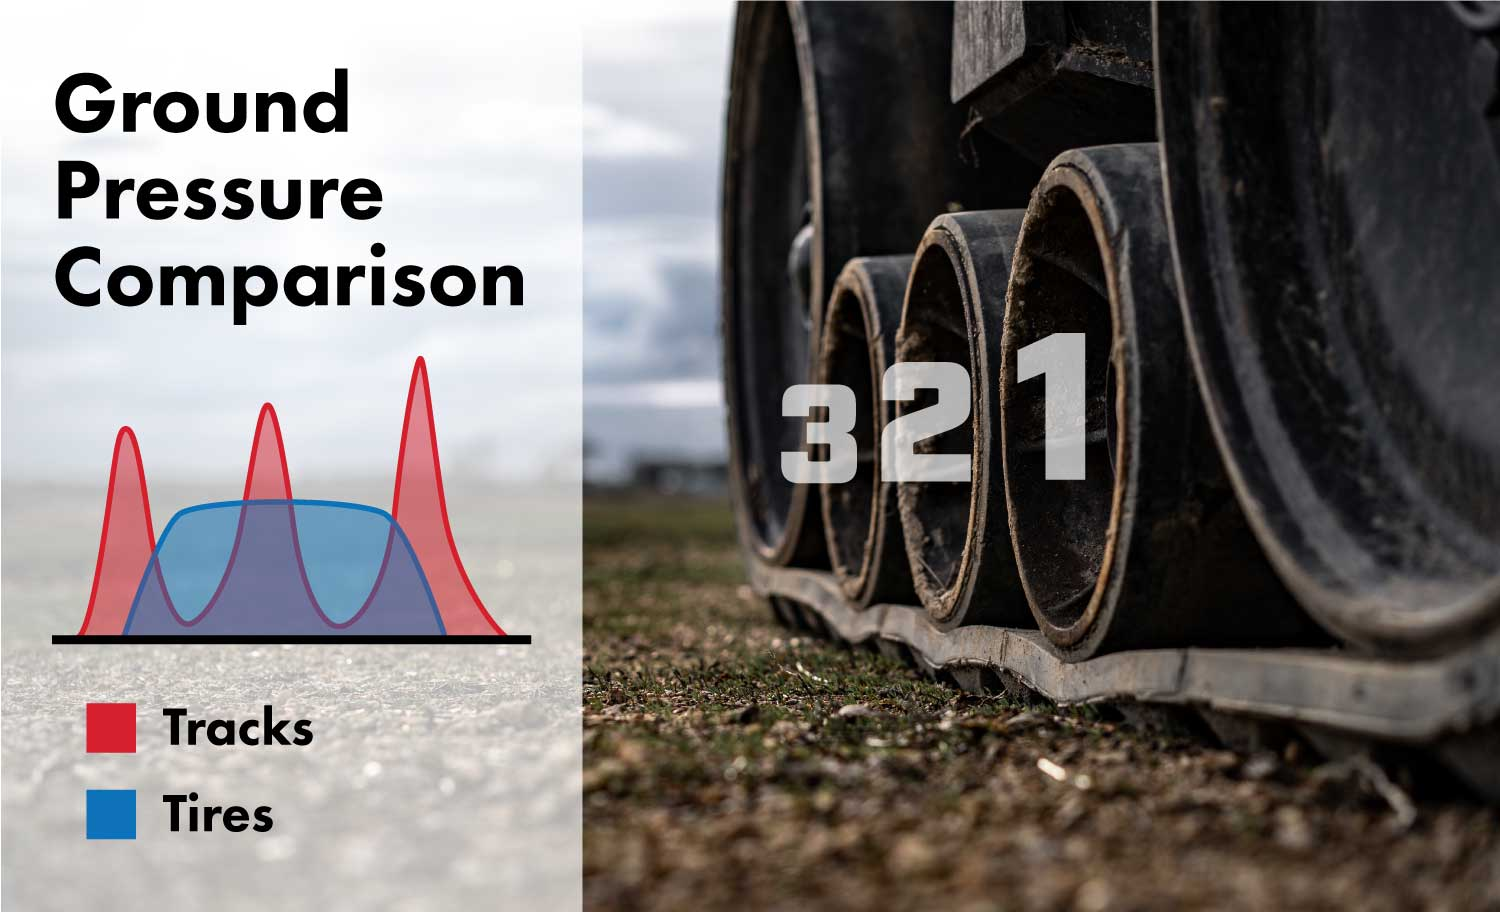 Ground pressure comparison between tires and tracks.